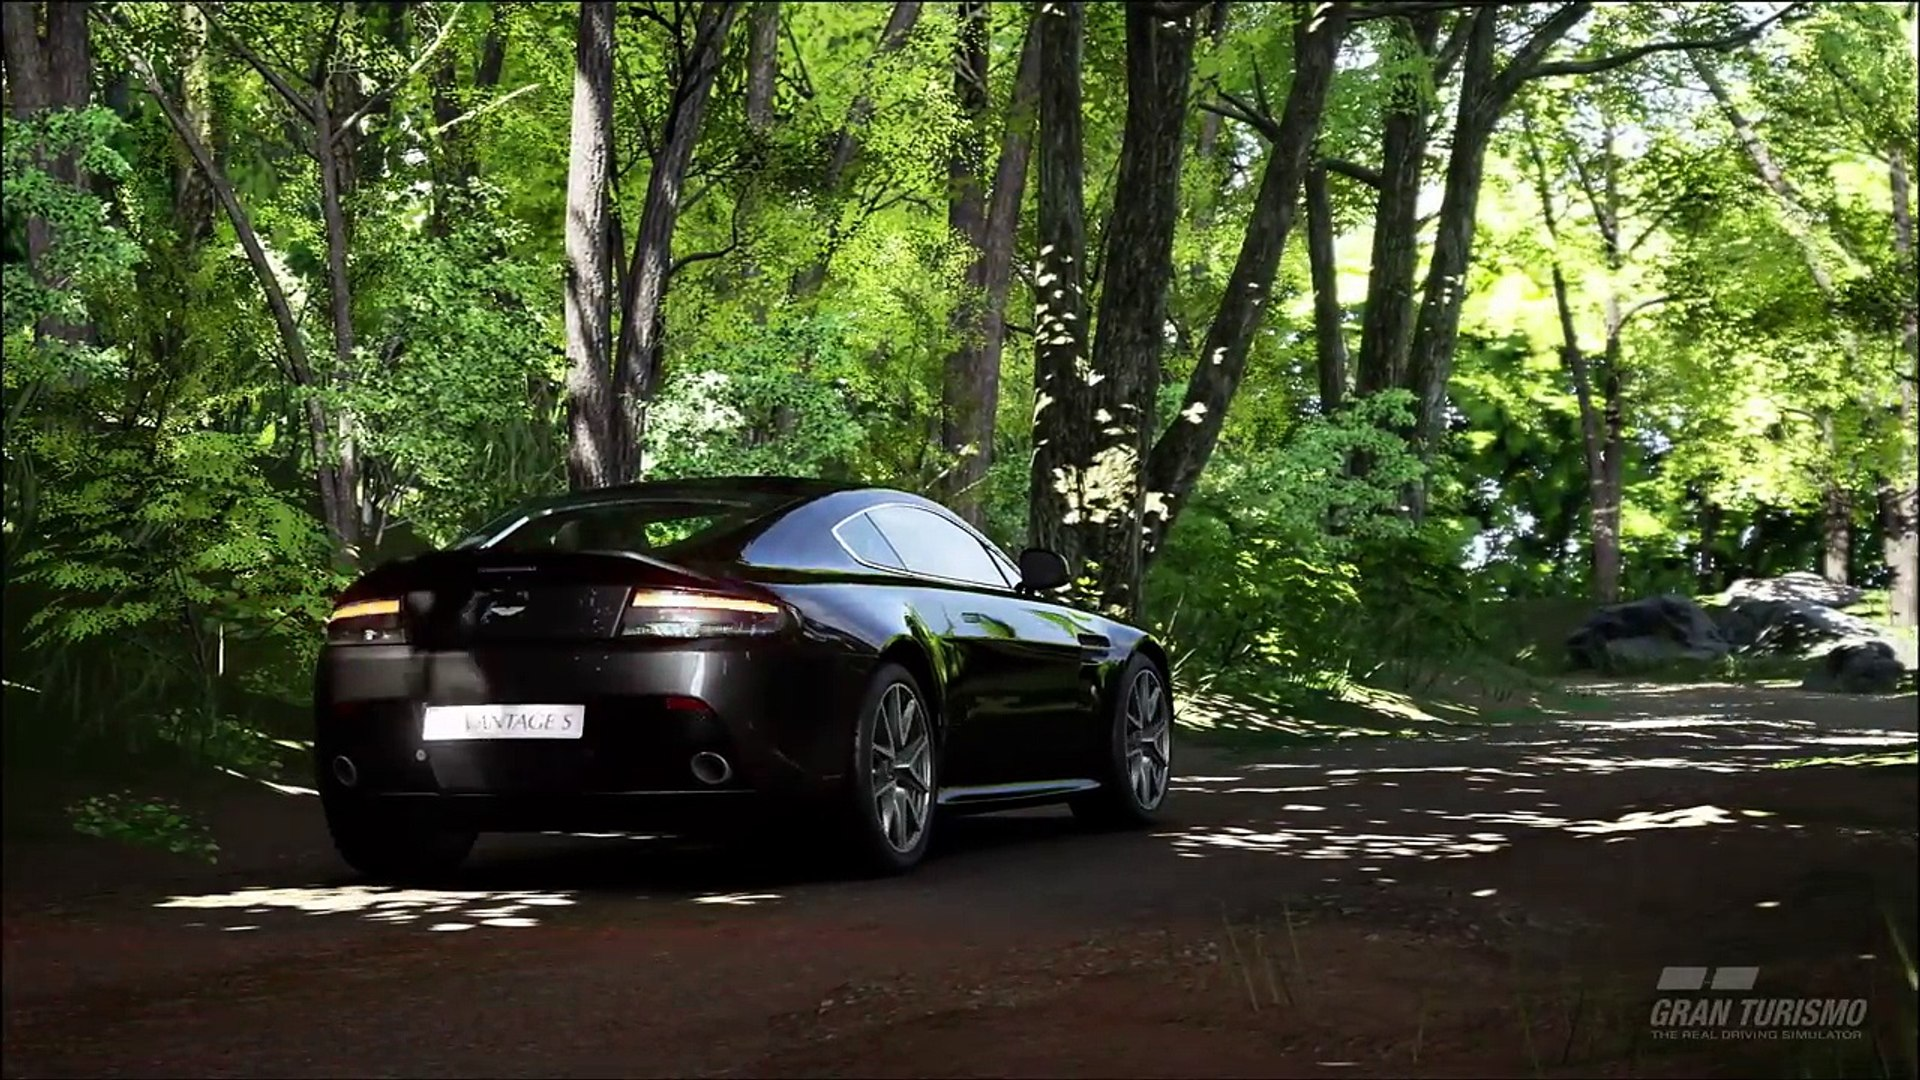 Gran Turismo Sport PS4 - 9 Minutes of Attract Mode (Demo) _ PlayStation 4 _ PS4 Pro Gameplay Footage